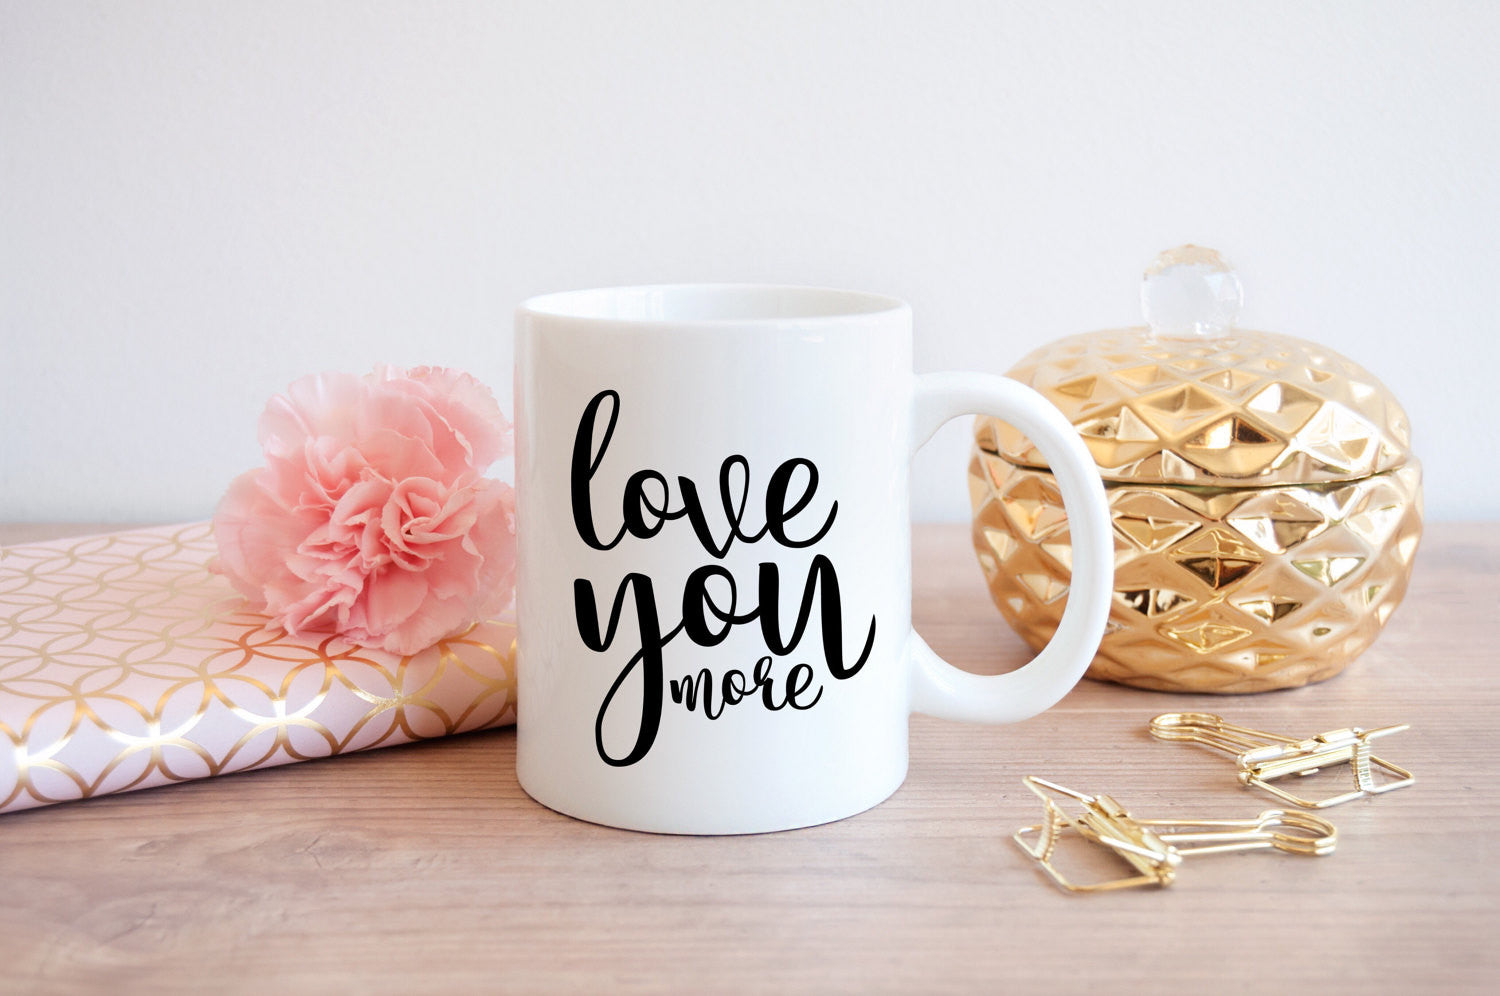 Love You More Cut File - The Chaotically Creative Mom